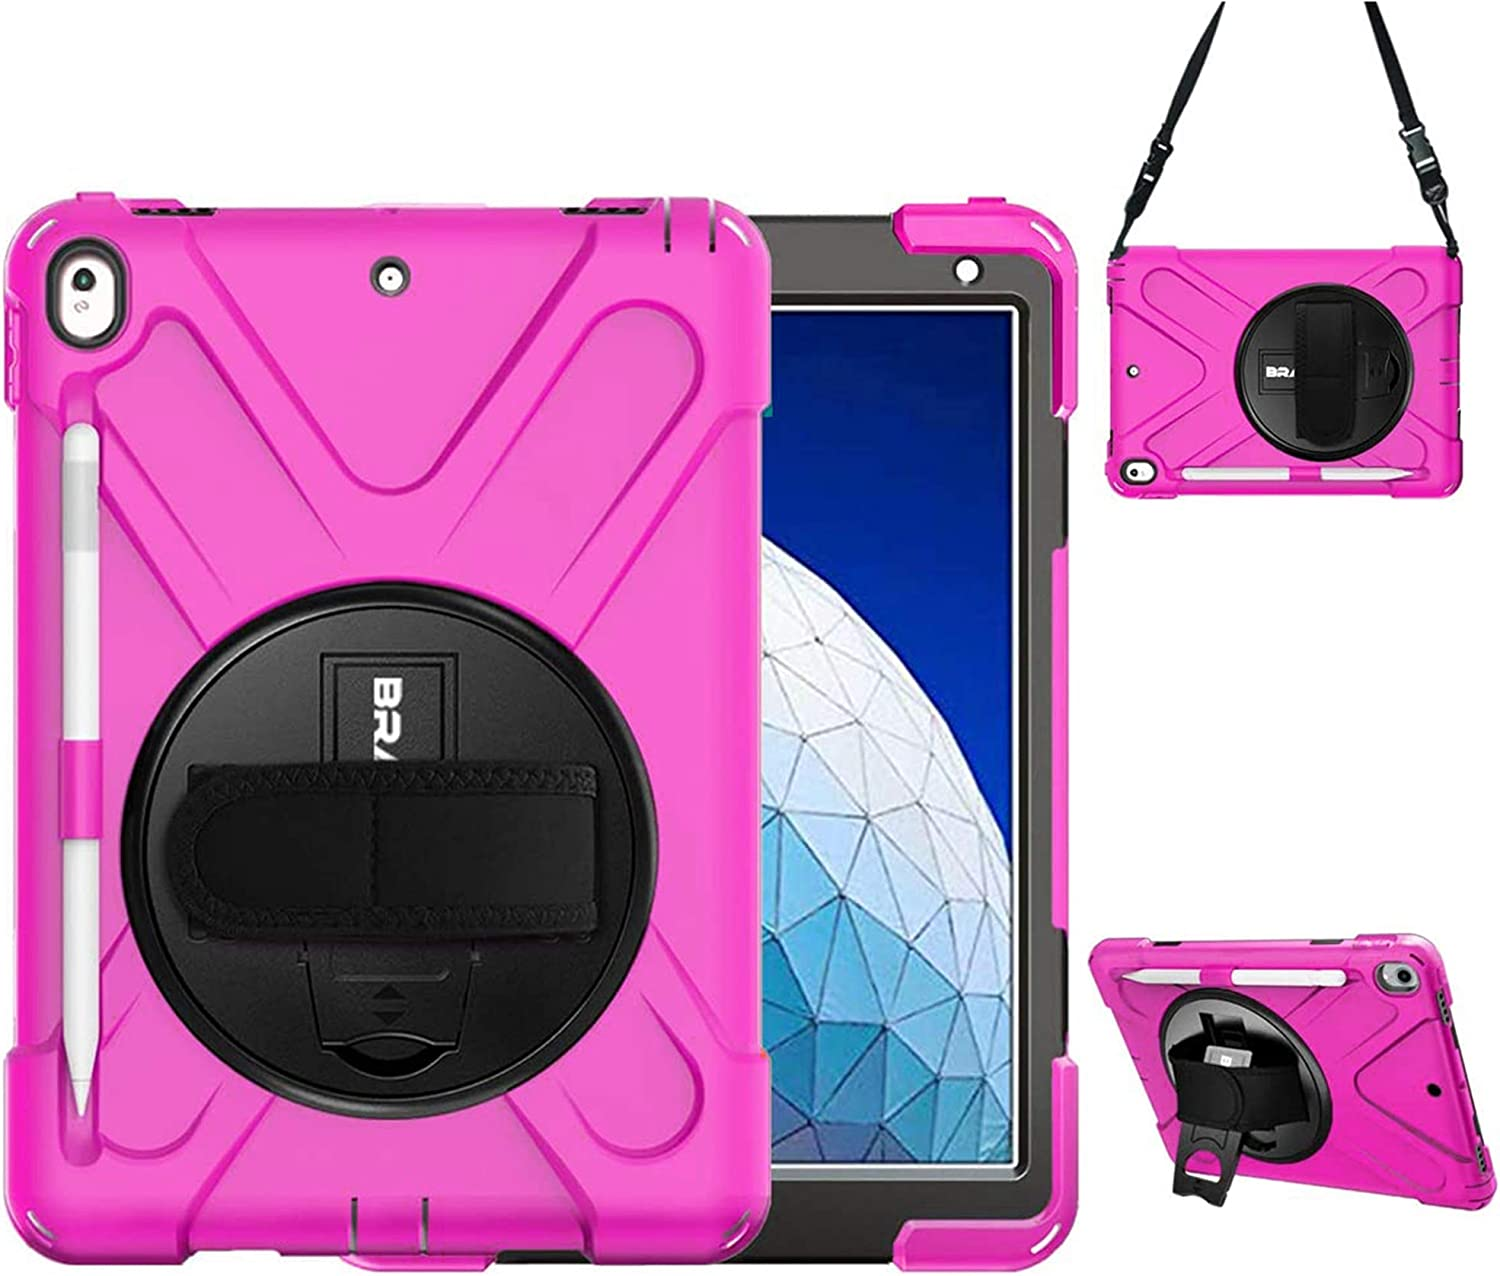 BRAECN iPad Air 10.5 Inch case, [Heavy Duty] Rugged Shockproof Protective Case Cover with Built-in Kickstand/Handle, Attachable Shoulder Strap and Pencil Holder for iPad Pro 10.5 Inch 2017 case-Rose